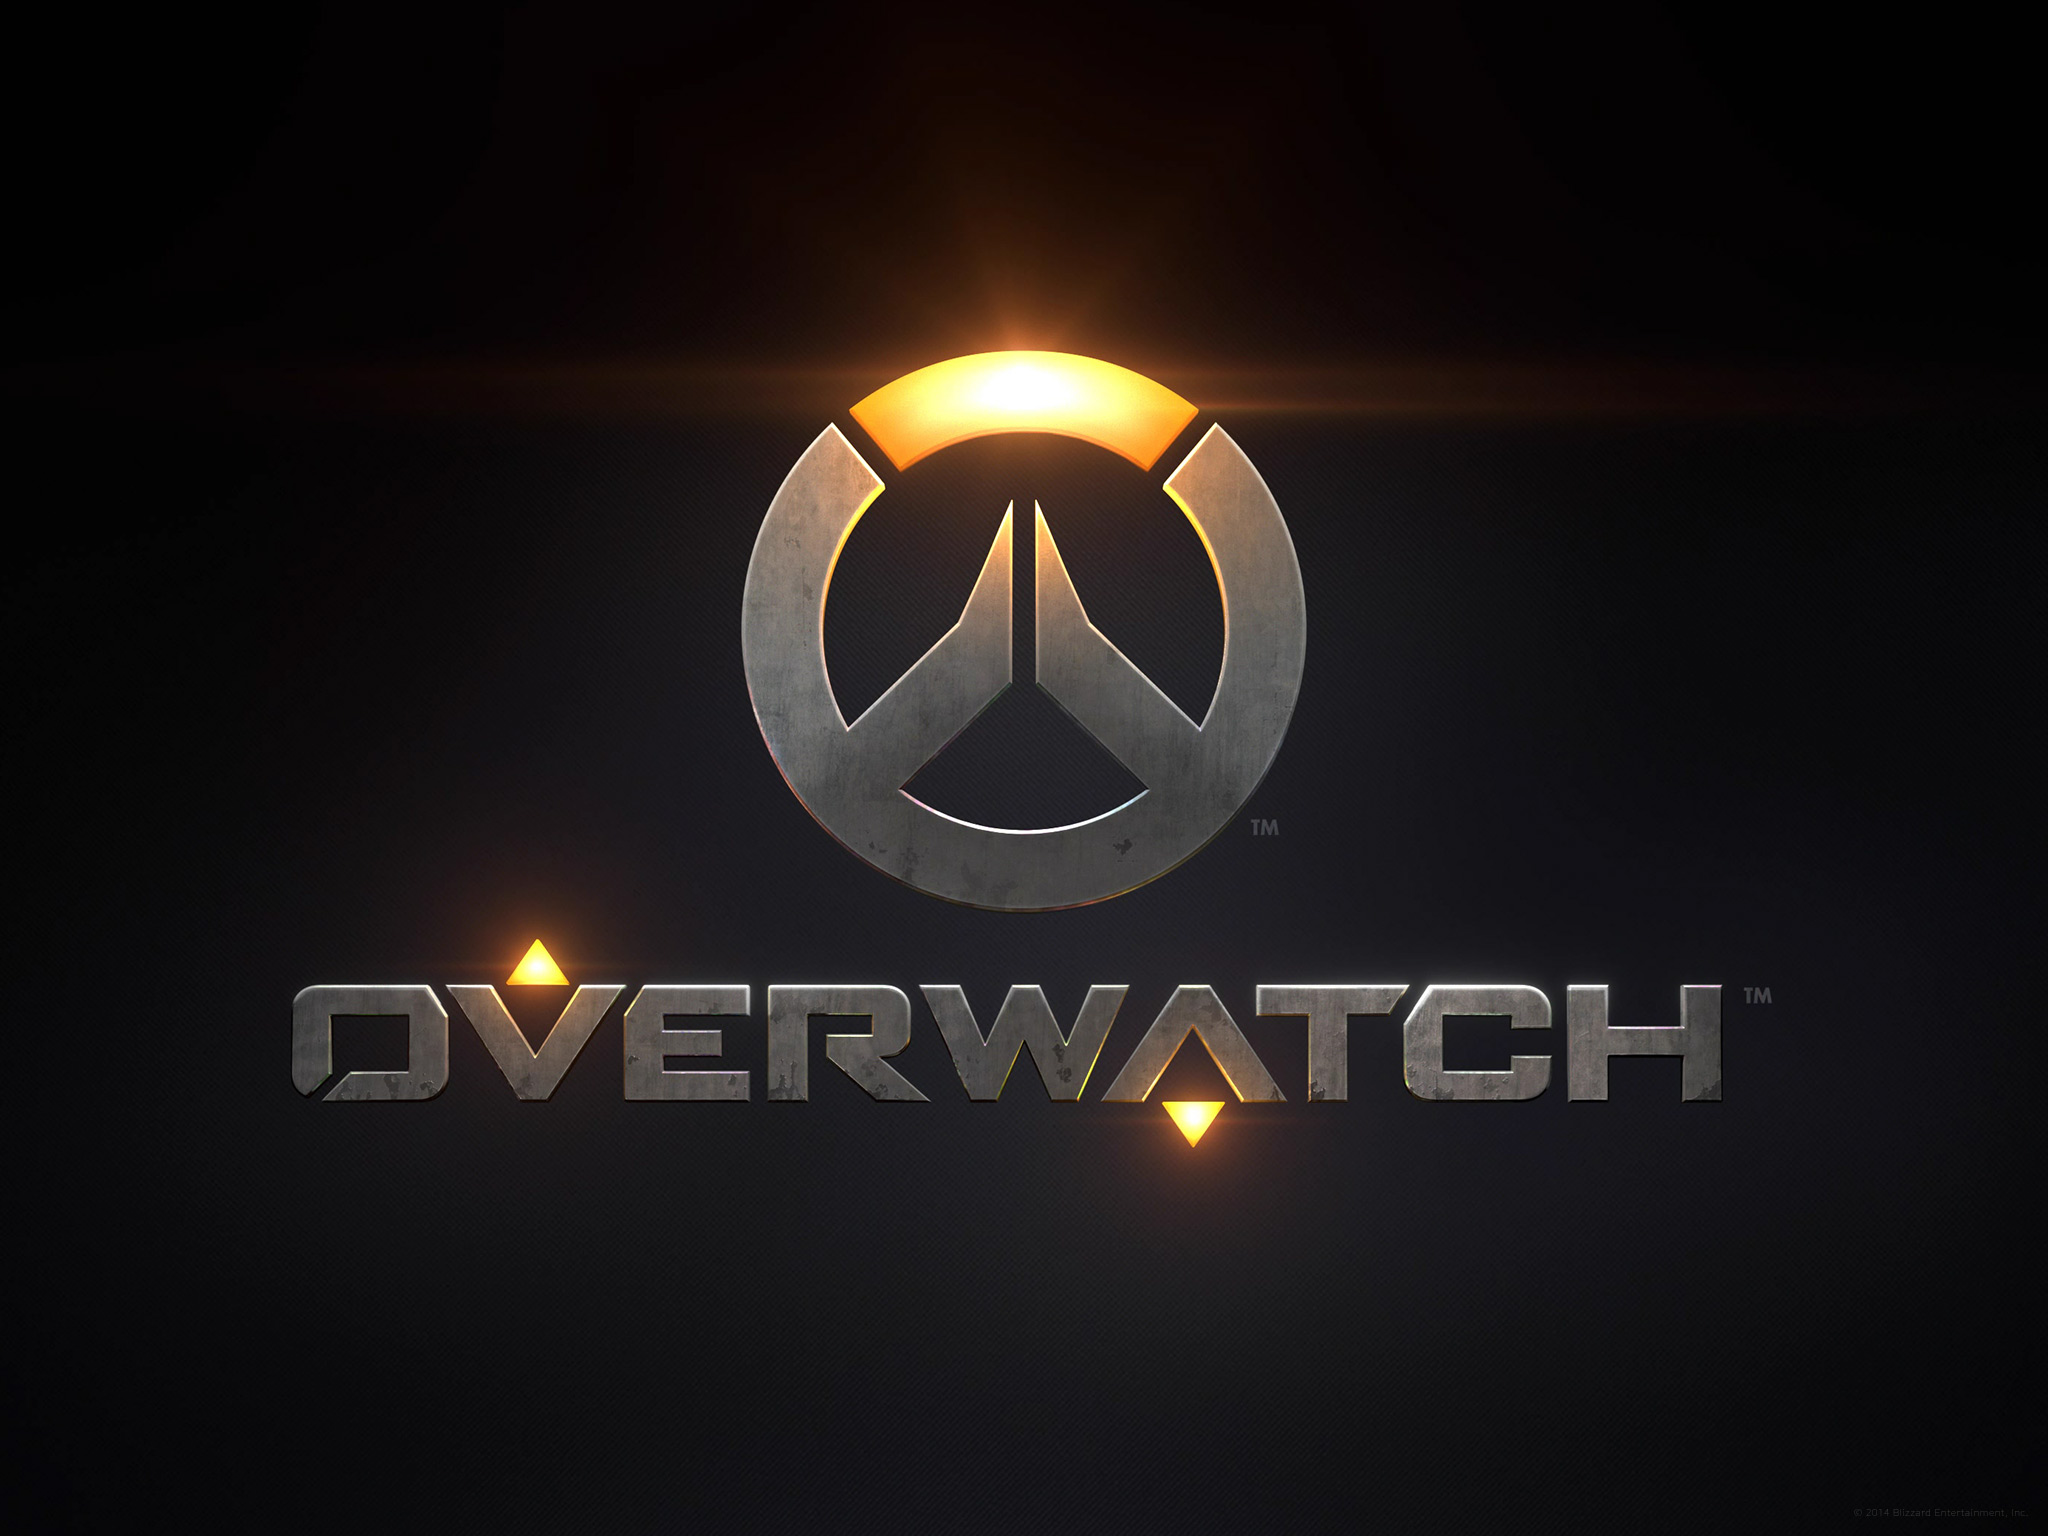 Overwatch wallpaper 1